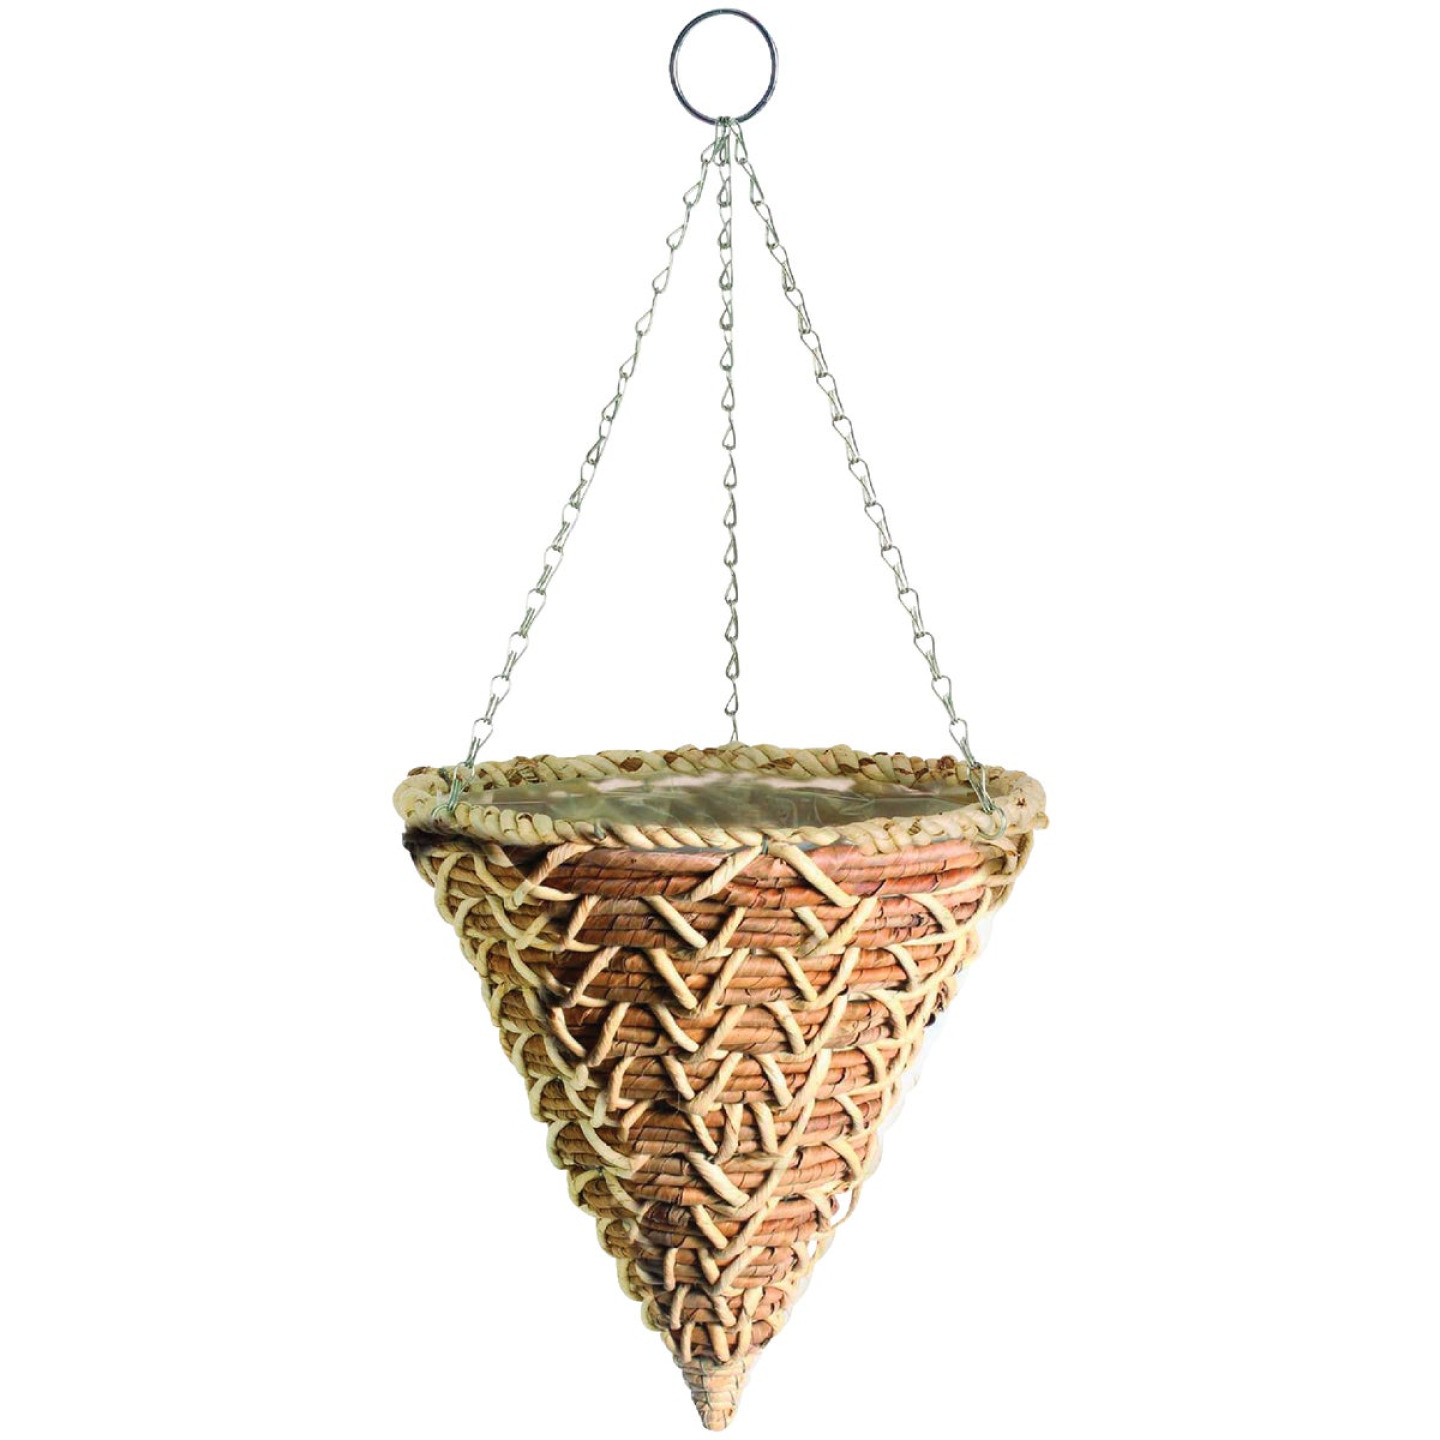 Gardman 14 In. Banana Braid Fiber Woven Hanging Plant Basket Cone Image 1